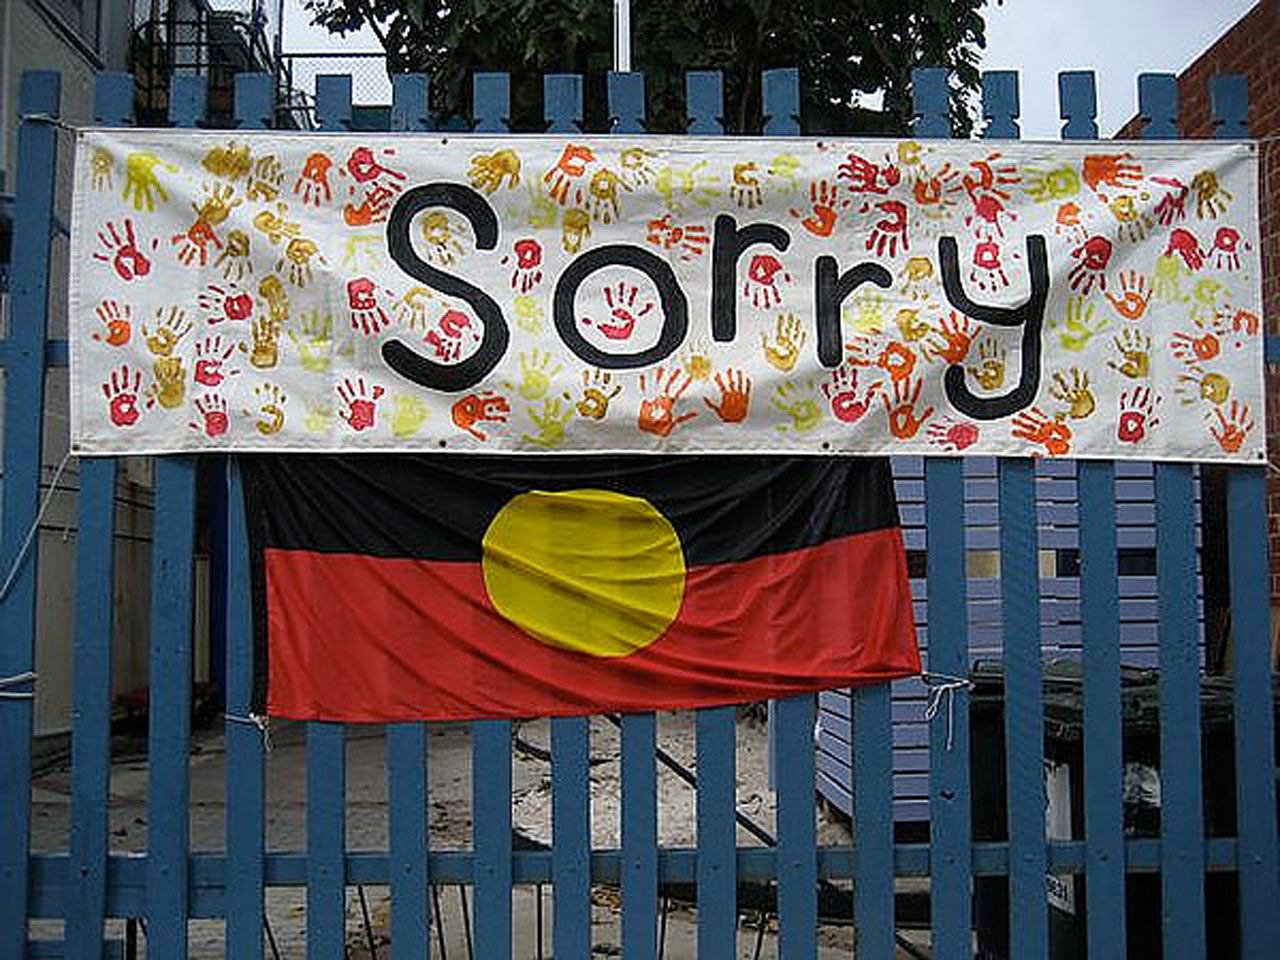 aboriginal treatment in australia Obviously not so likewise you cannot generalize the treatment of aboriginal peoplebased on my experience, as an australian studying in a public school, i can confidently say that your race/ethnicity matters zilch when it comes to how aussies treat you.